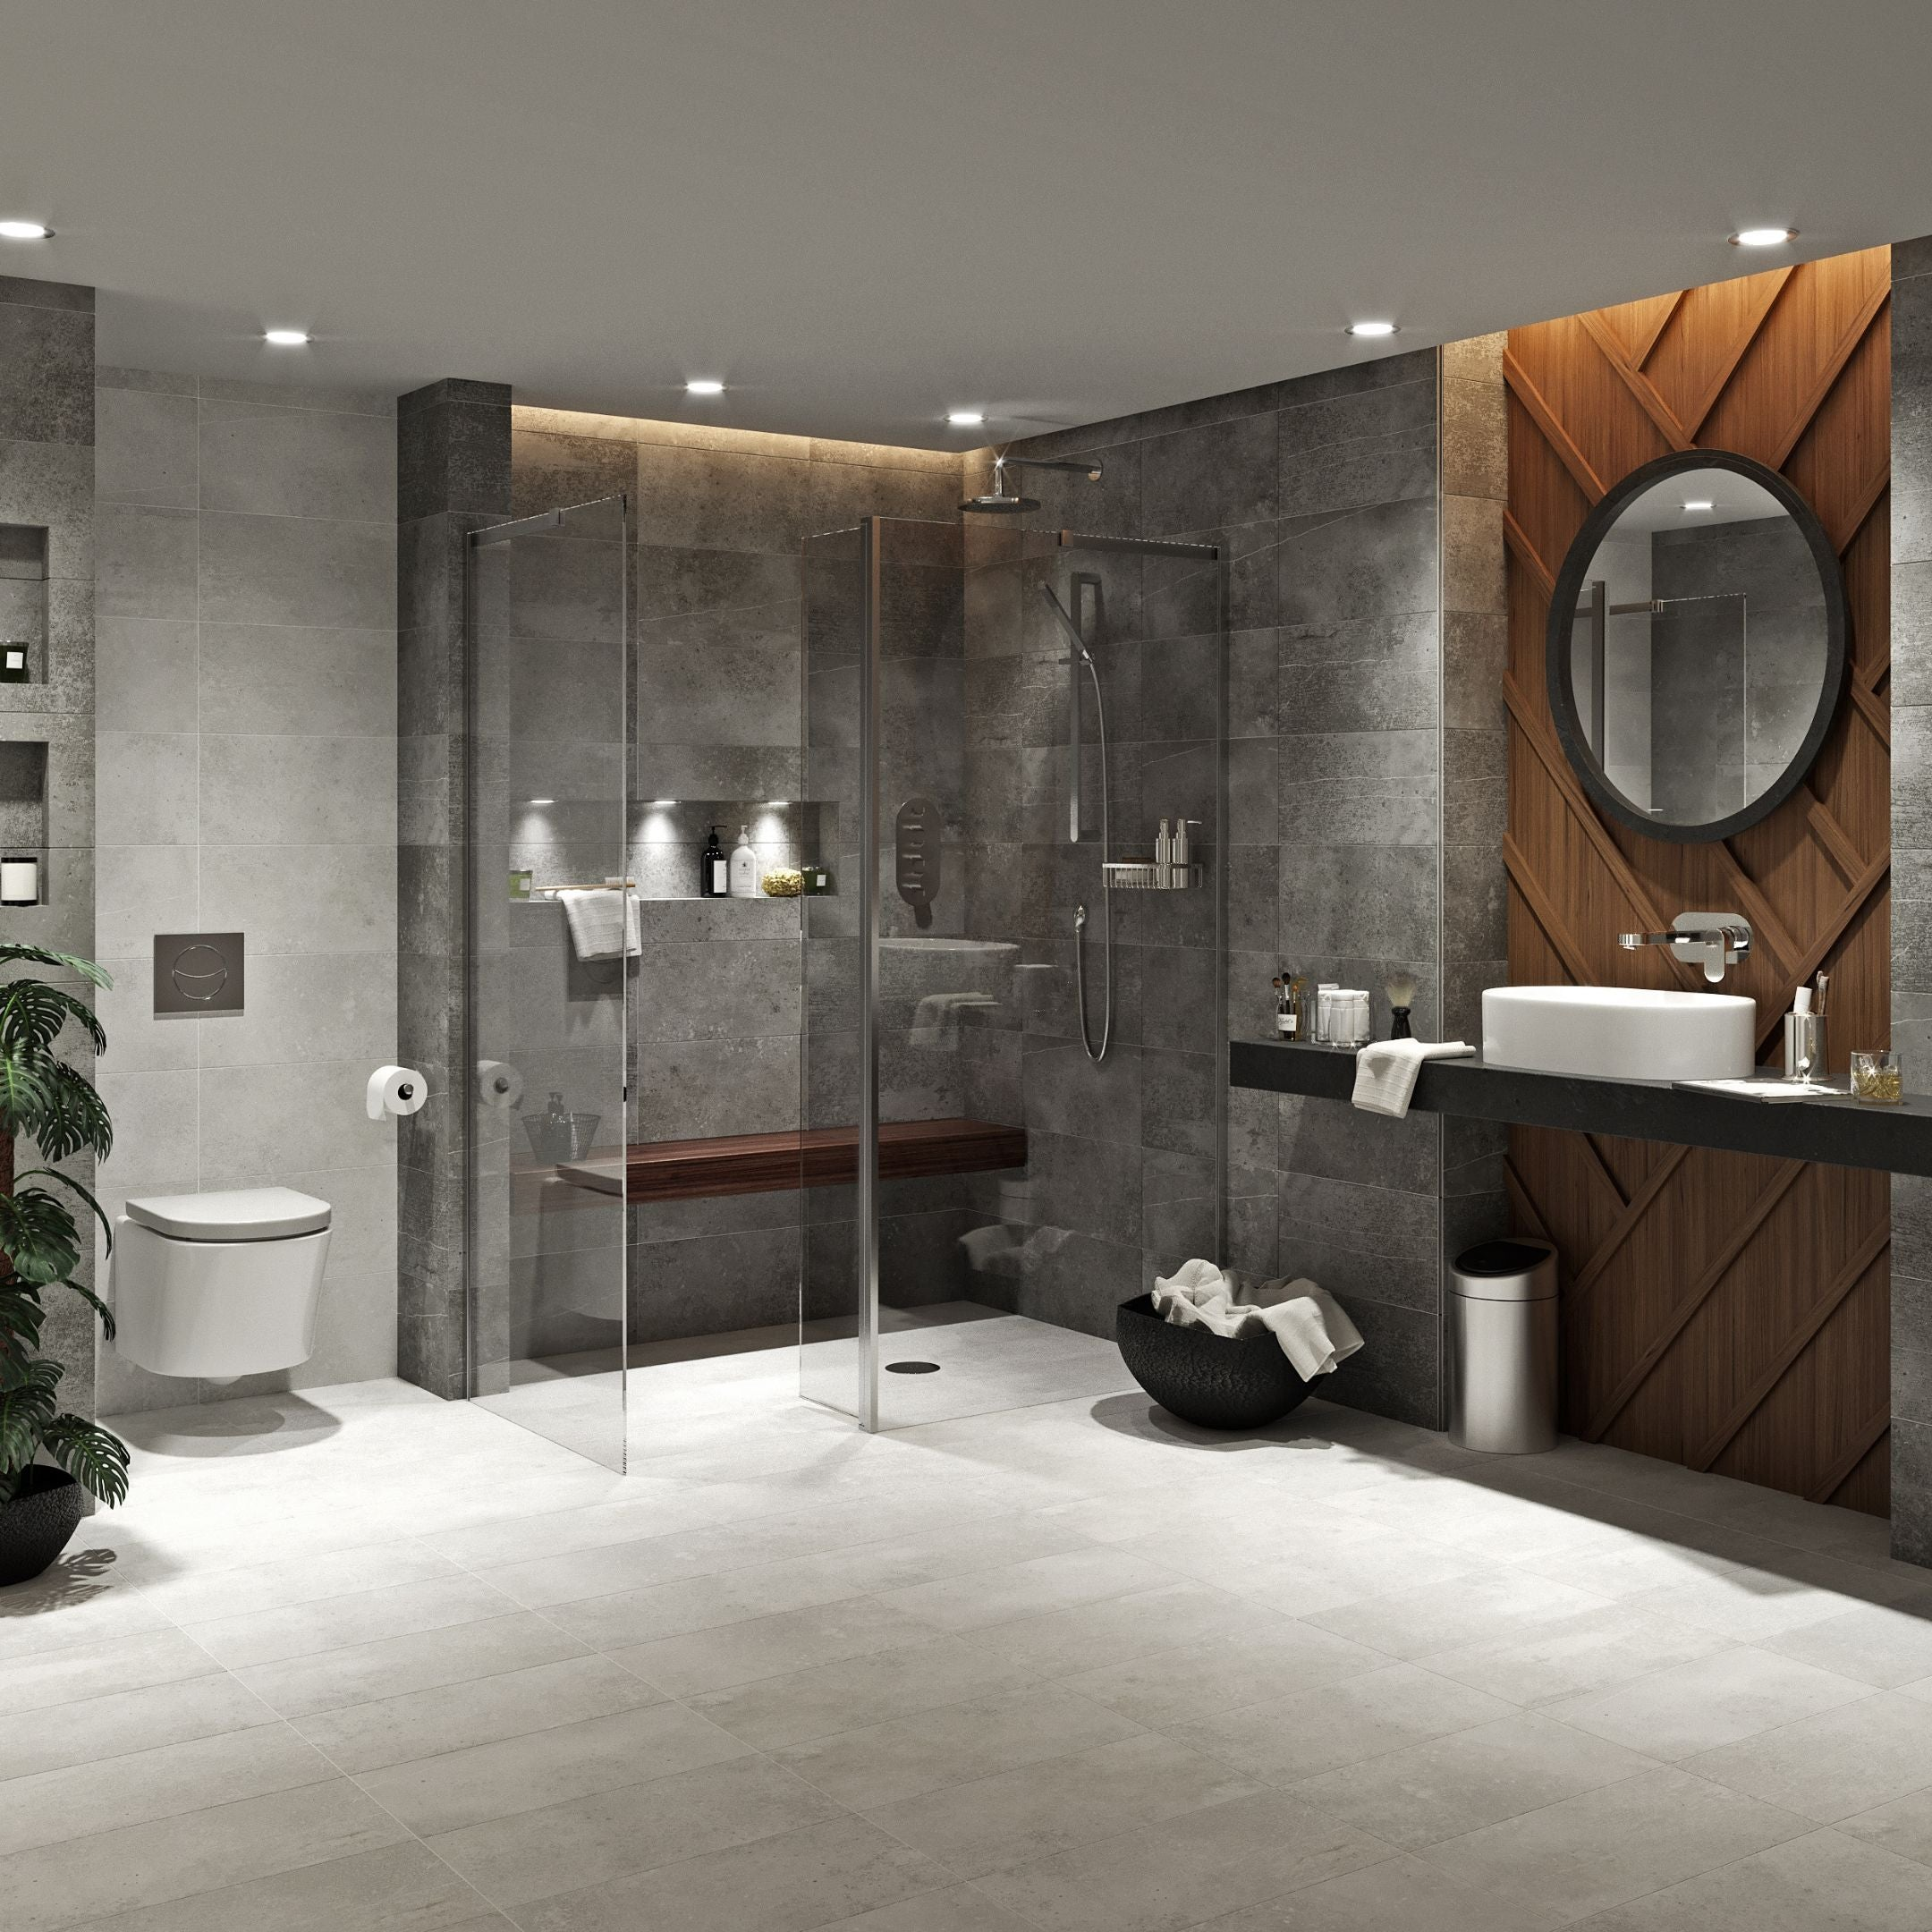 5 Match-Winning Bathroom Tips For Your Bachelor Pad